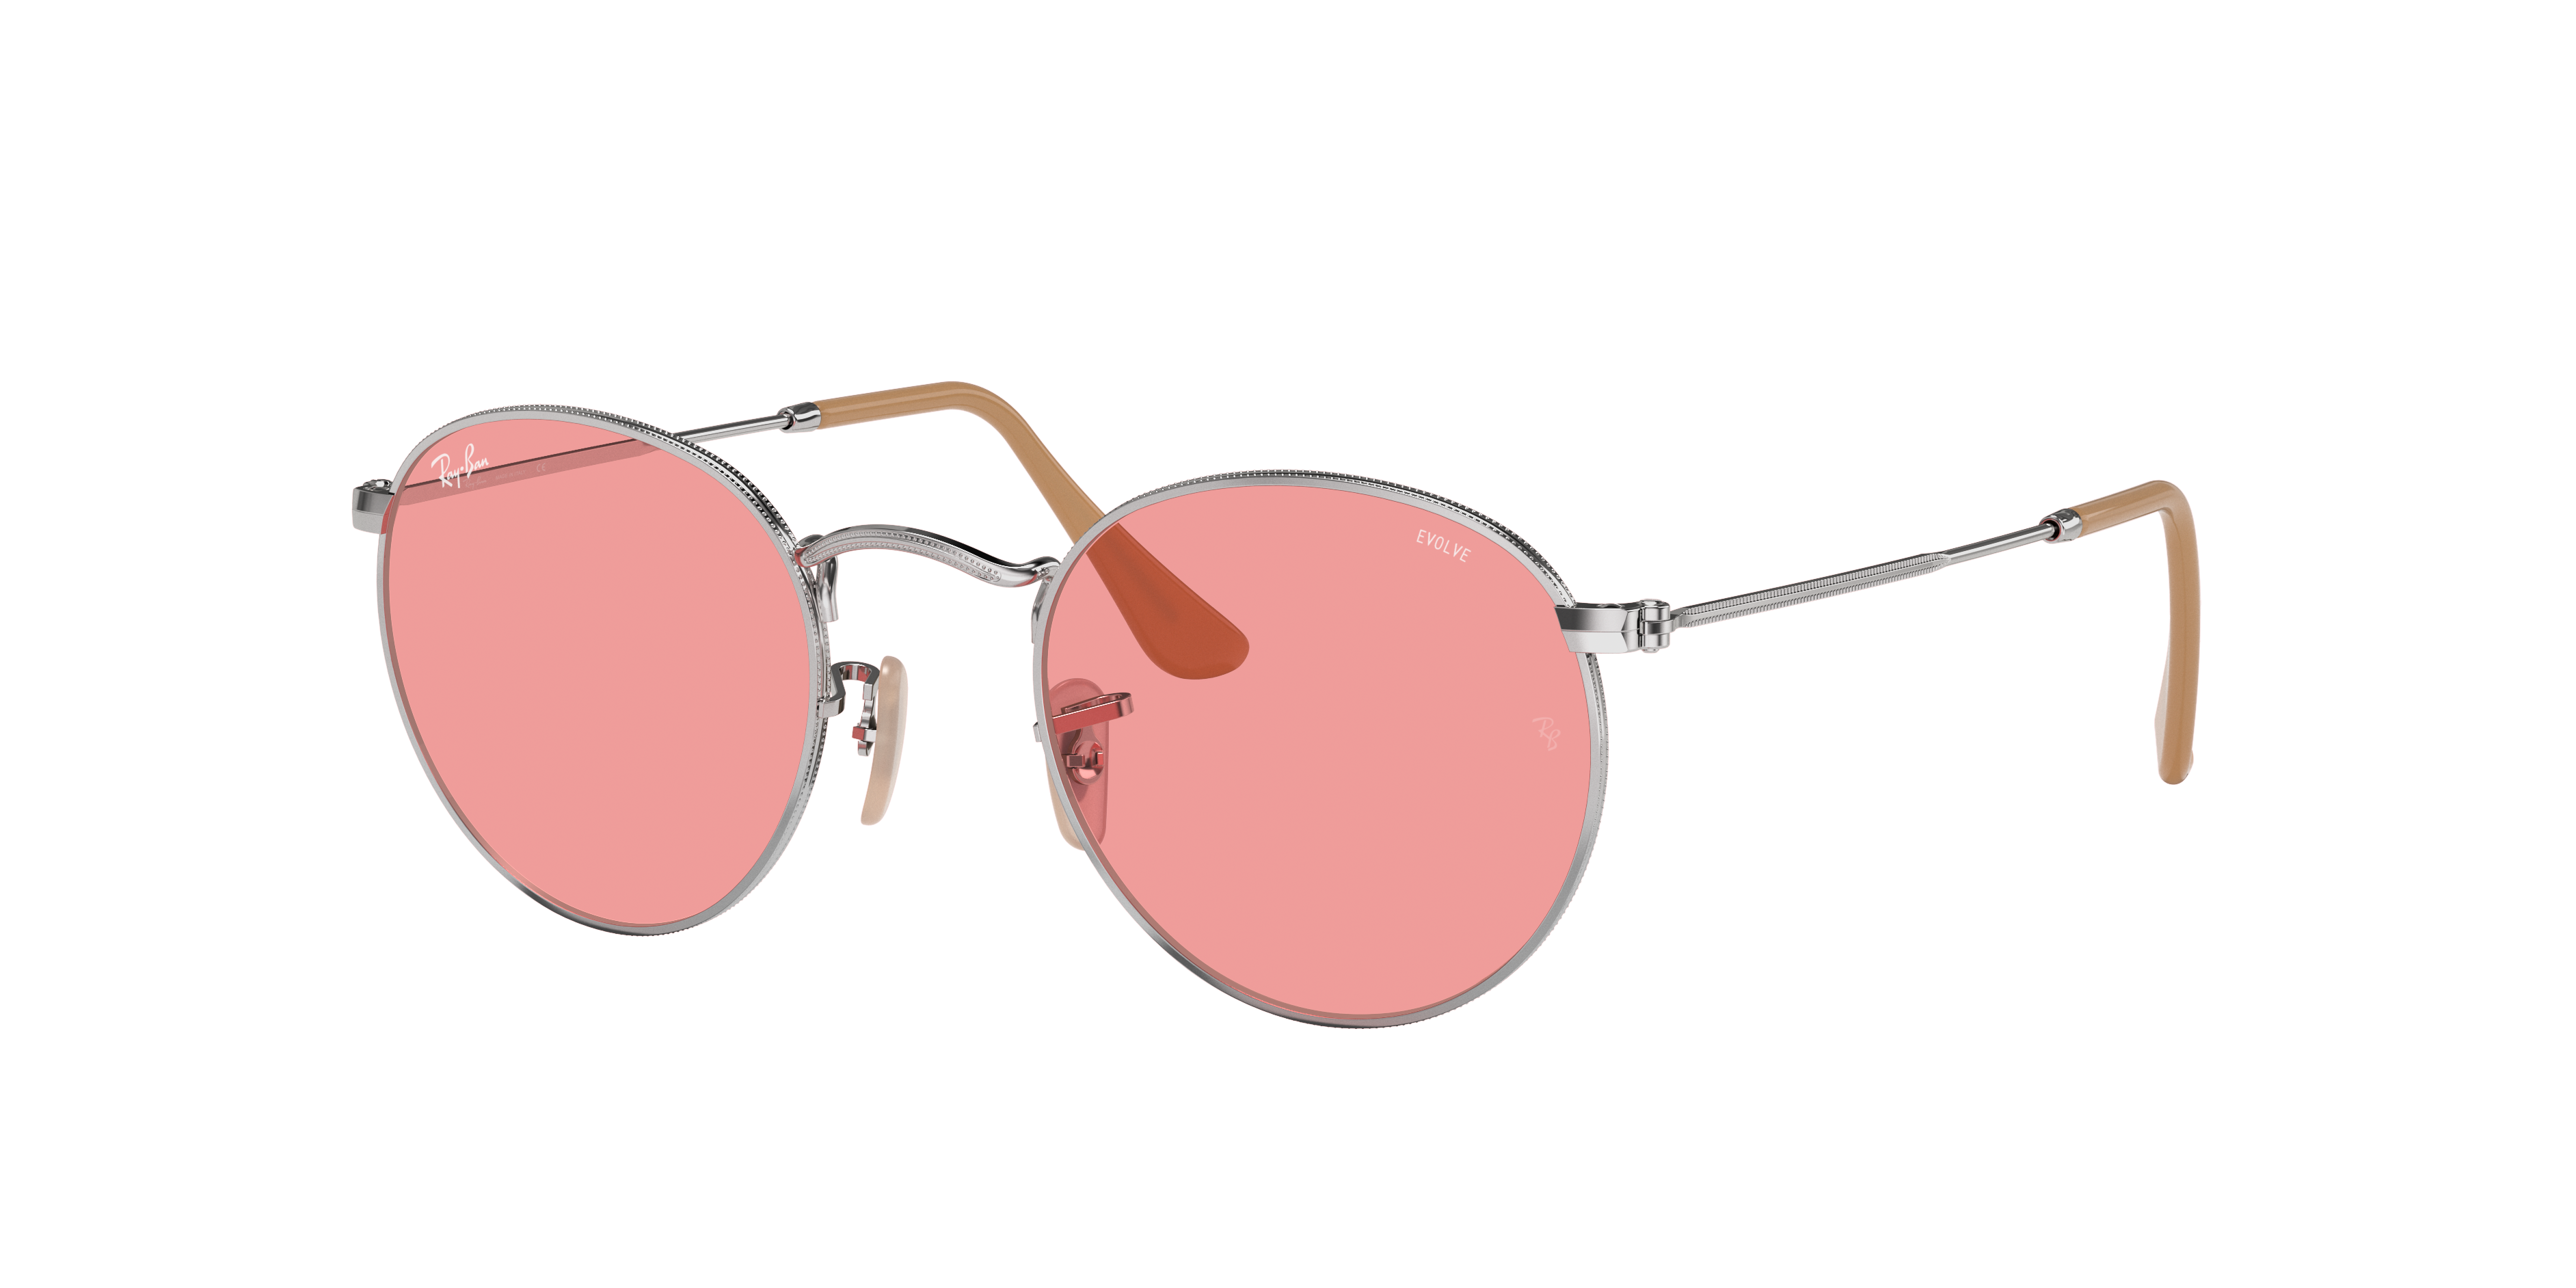 Ray-Ban Round Washed Evolve Silver, Pink Lenses - RB3447